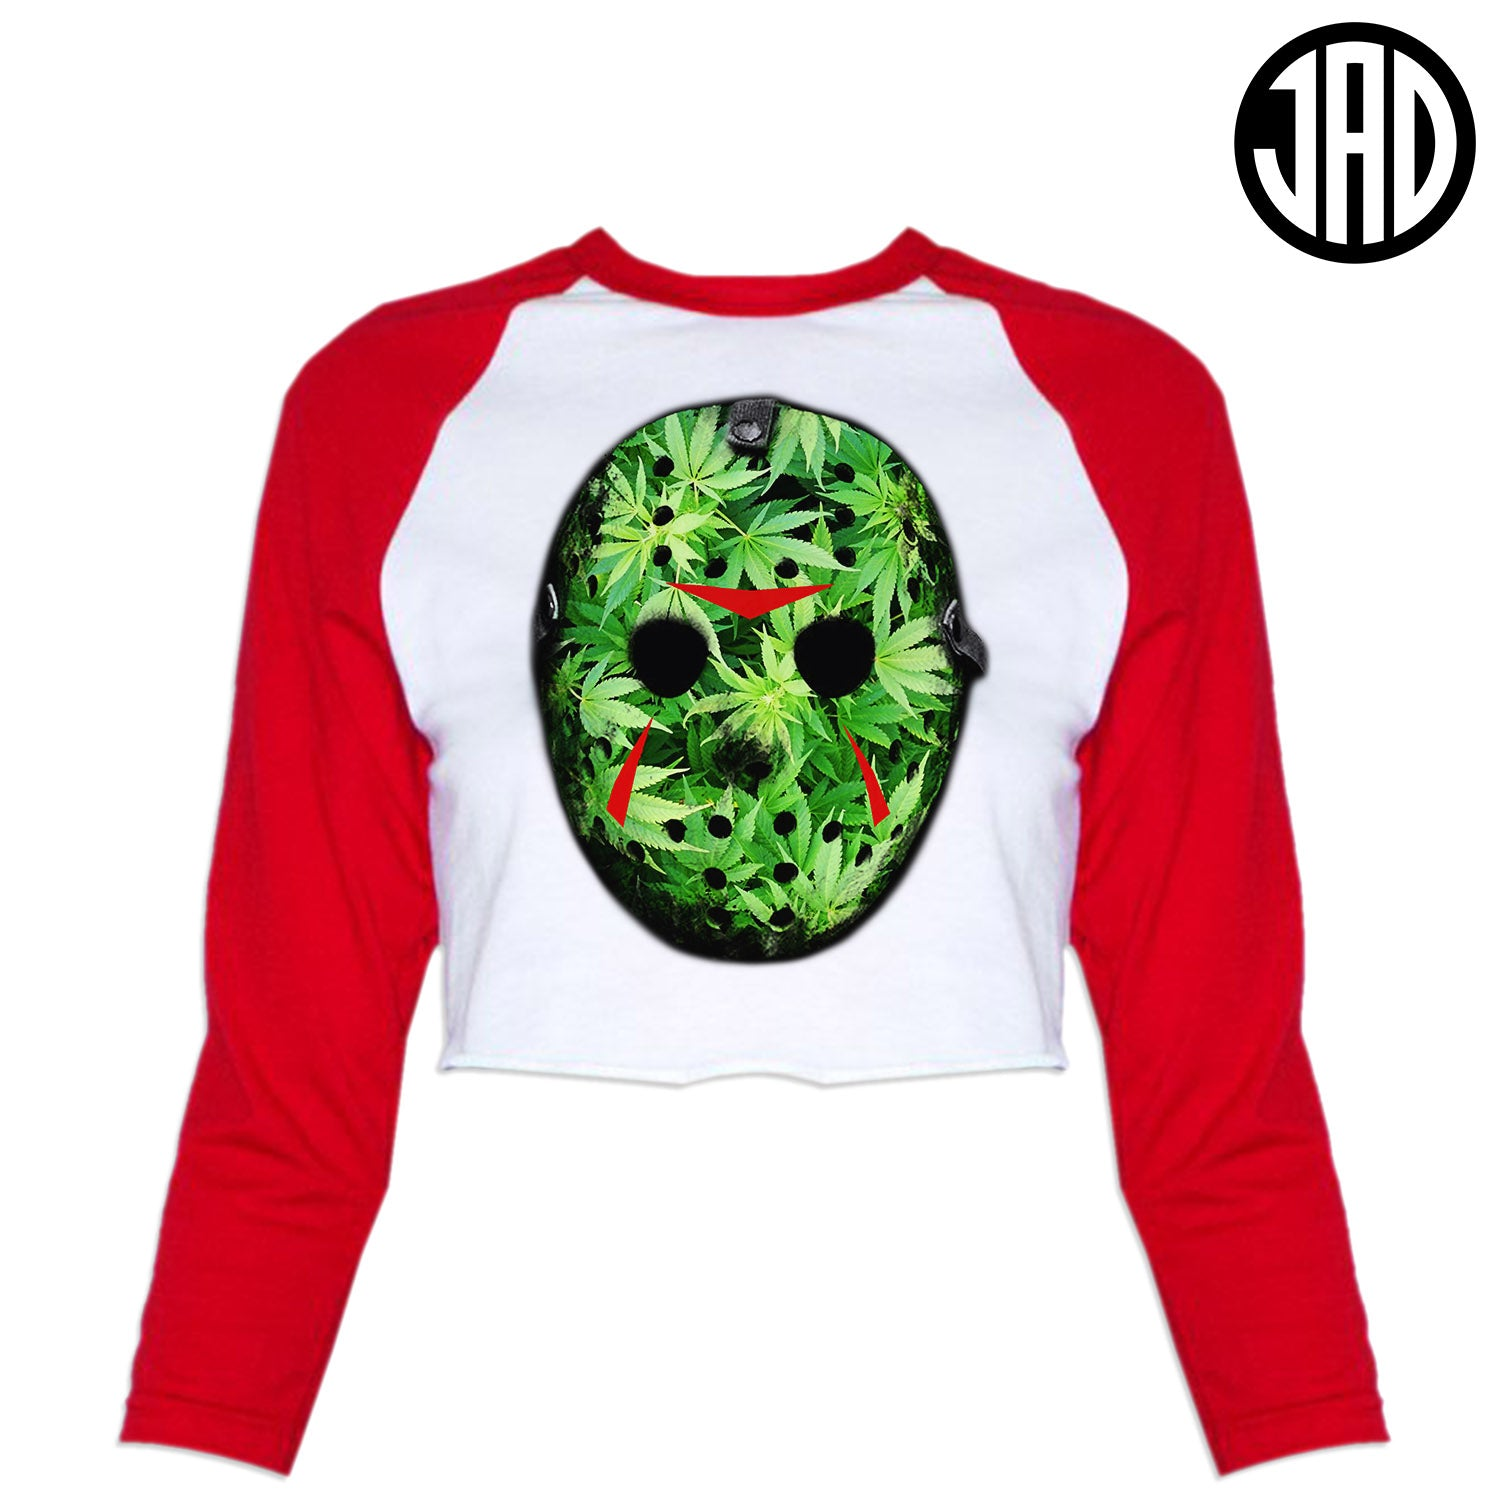 Weed Mask - Women's Cropped Baseball Tee